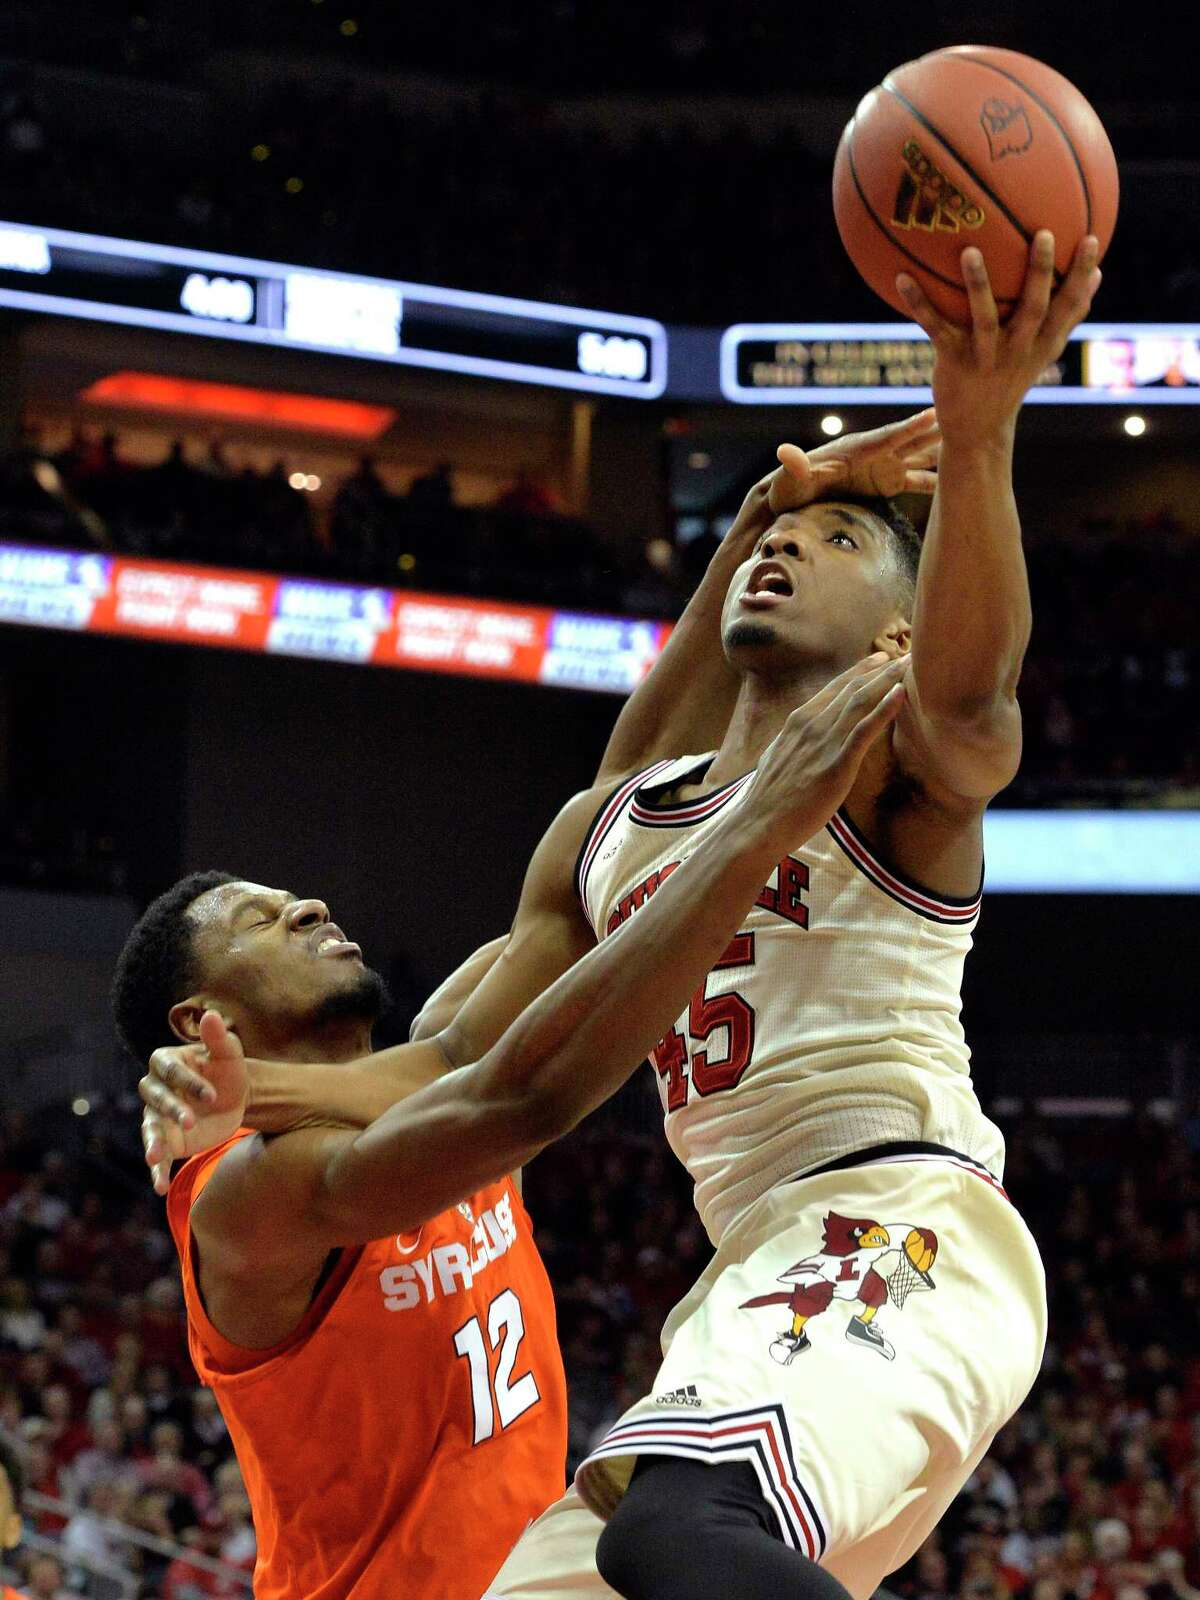 Louisville's Donovan Mitchell (45) is fouled by Syracuse's Taurean Thompson (12) during the second half of an NCAA college basketball game, Sunday, Feb. 26, 2017, in Louisville, Ky. (AP Photo/Timothy D. Easley) ORG XMIT: KYTE109